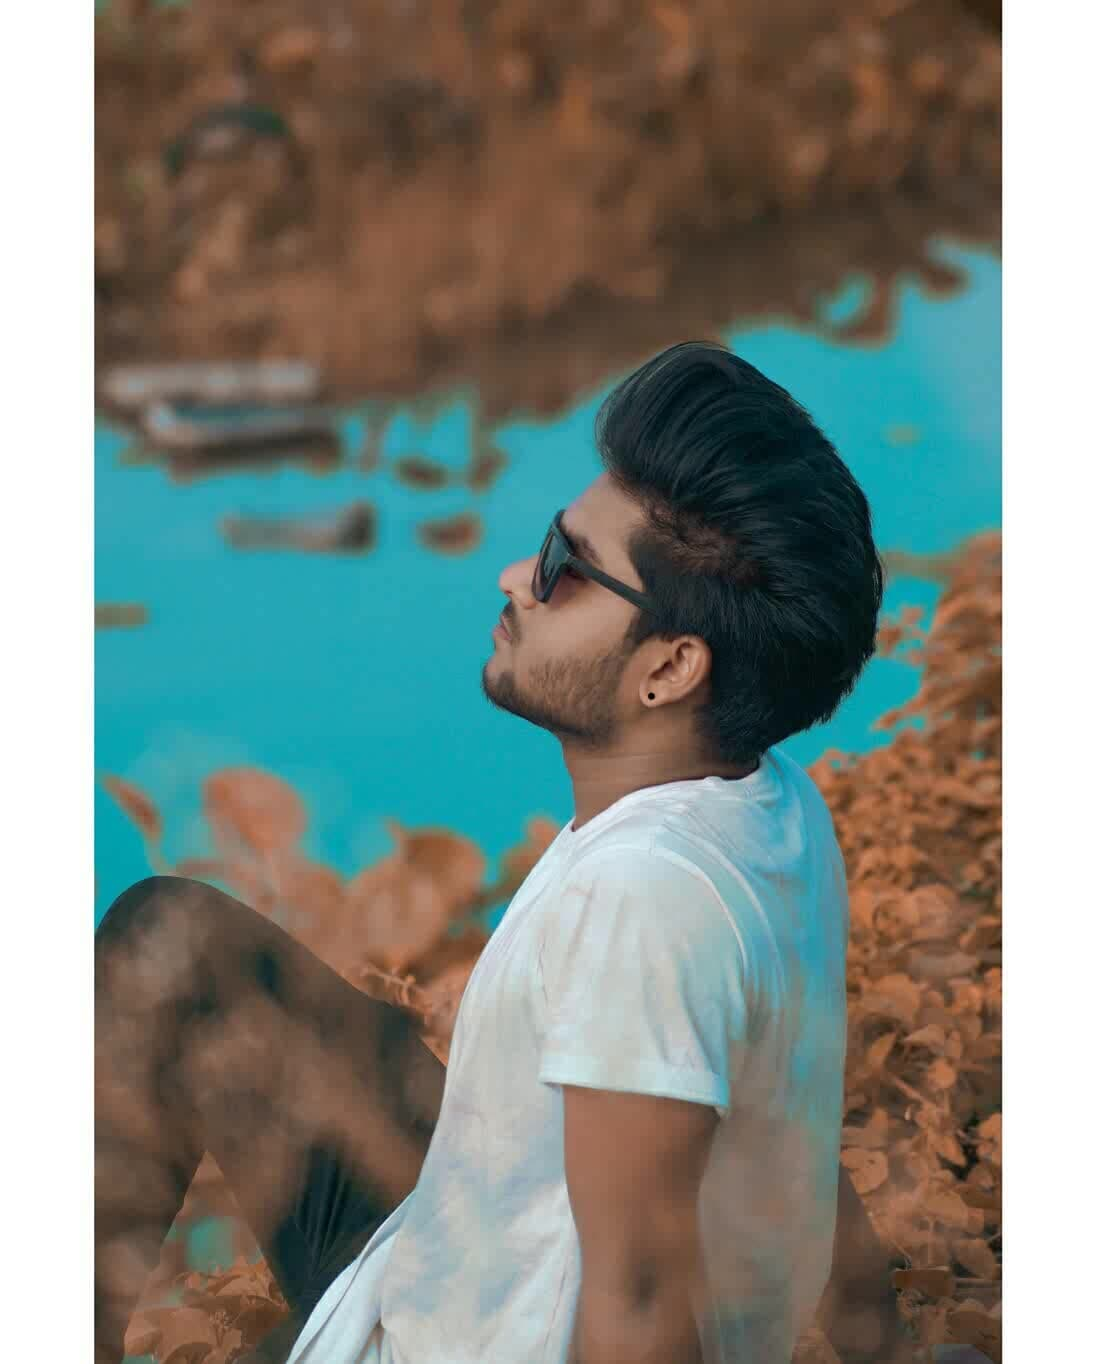 #sia #song #hollywood #indian #indianblogger #indianfashionblog #blogstyle #sexy-look #hair #hairstyle #feeling-loved #clouds #watercolor #location #tshirt #zoom #modelings #unique #fab #freestyle #instawinter #ropo #roposlove #roposoblogger #dailypost #views